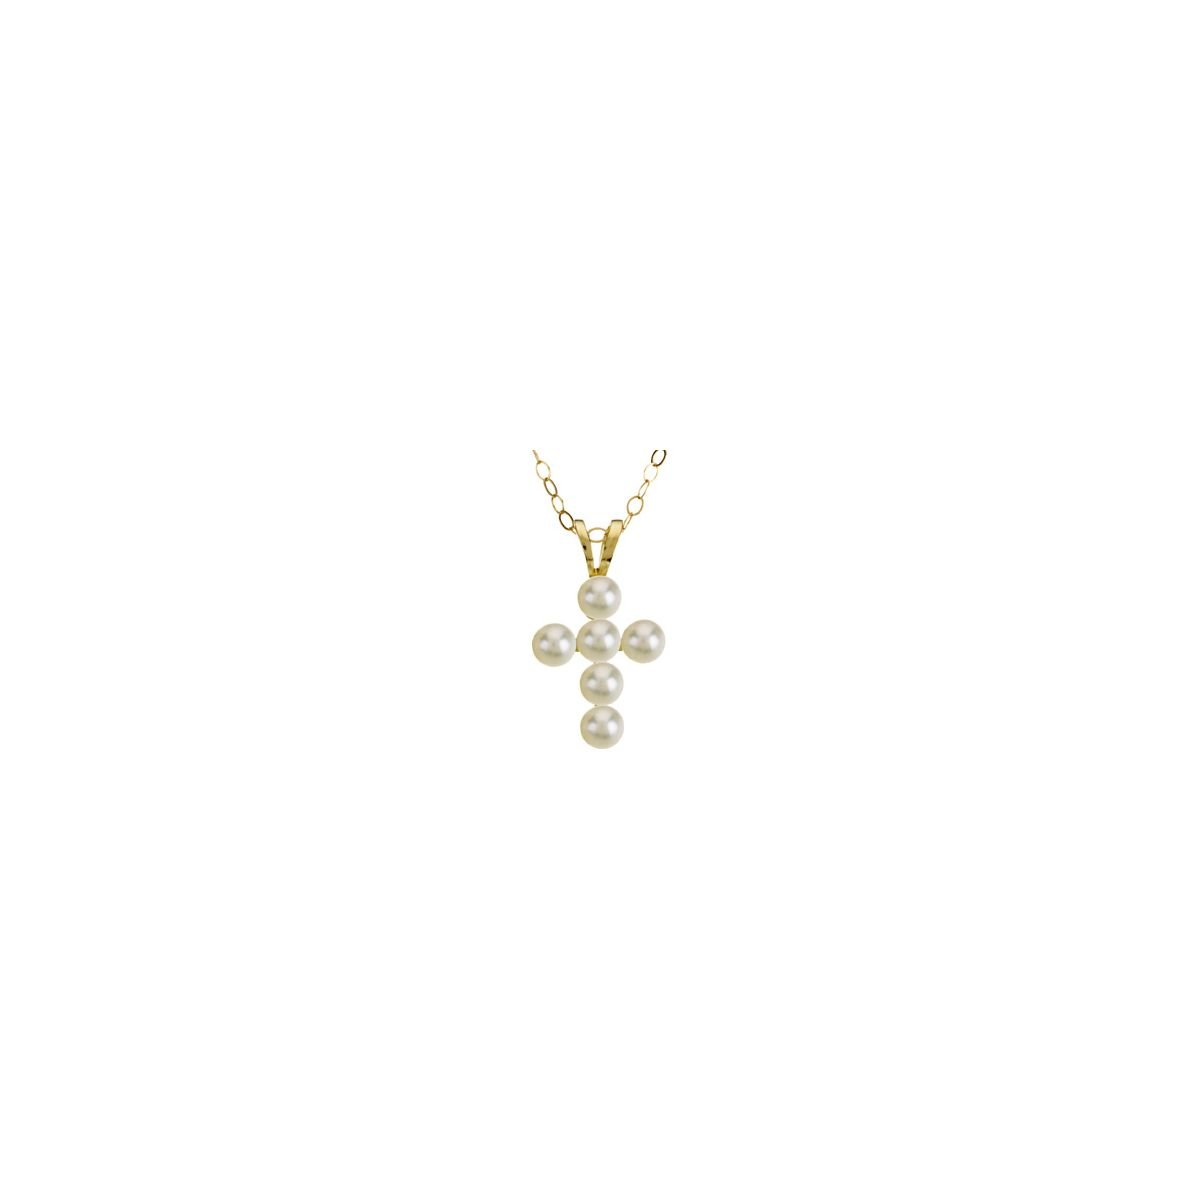 Amazon Eternity Wedding Bands Cultured Freshwater Youth Pearl Cross Necklace In 14k Yellow Gold Jewelry: Wedding Band With Cross Pendant At Websimilar.org